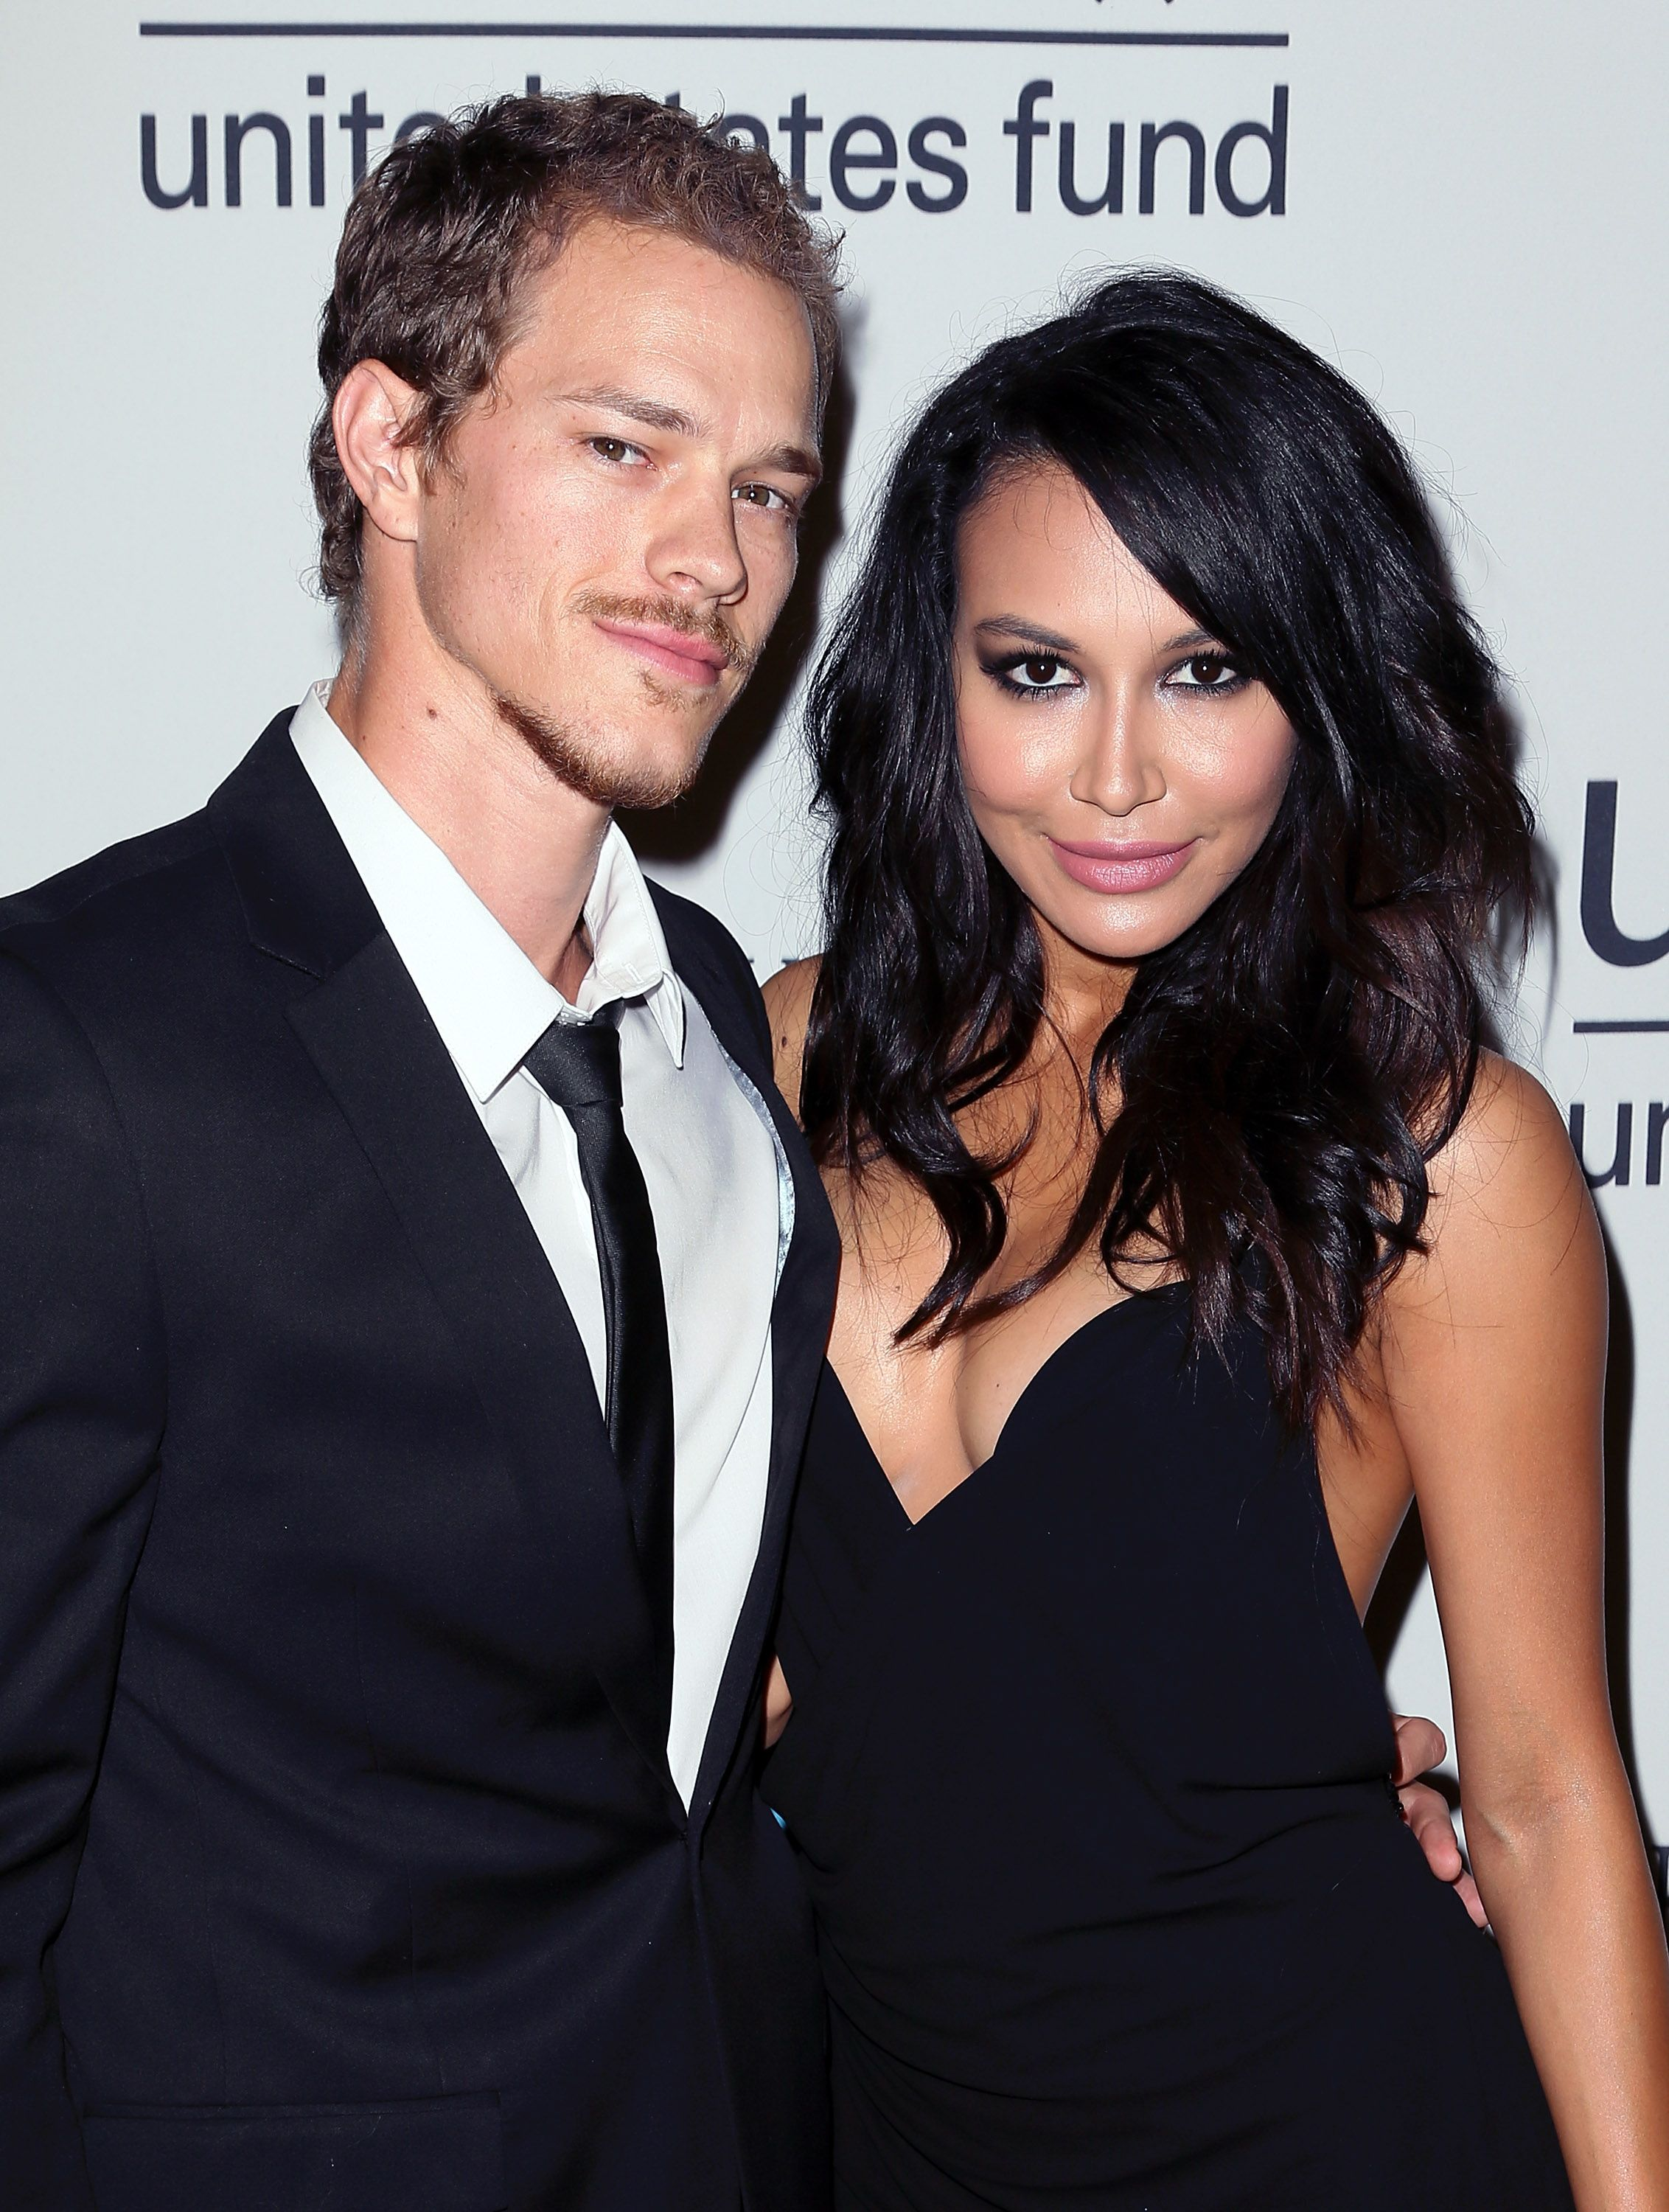 Ryan Dorsey and the late Naya Rivera at the UNICEF's Next Generation's 2nd Annual UNICEF Masquerade Ball at Hollywood Forever Cemetery on October 30, 2014 | Photo: Getty Images